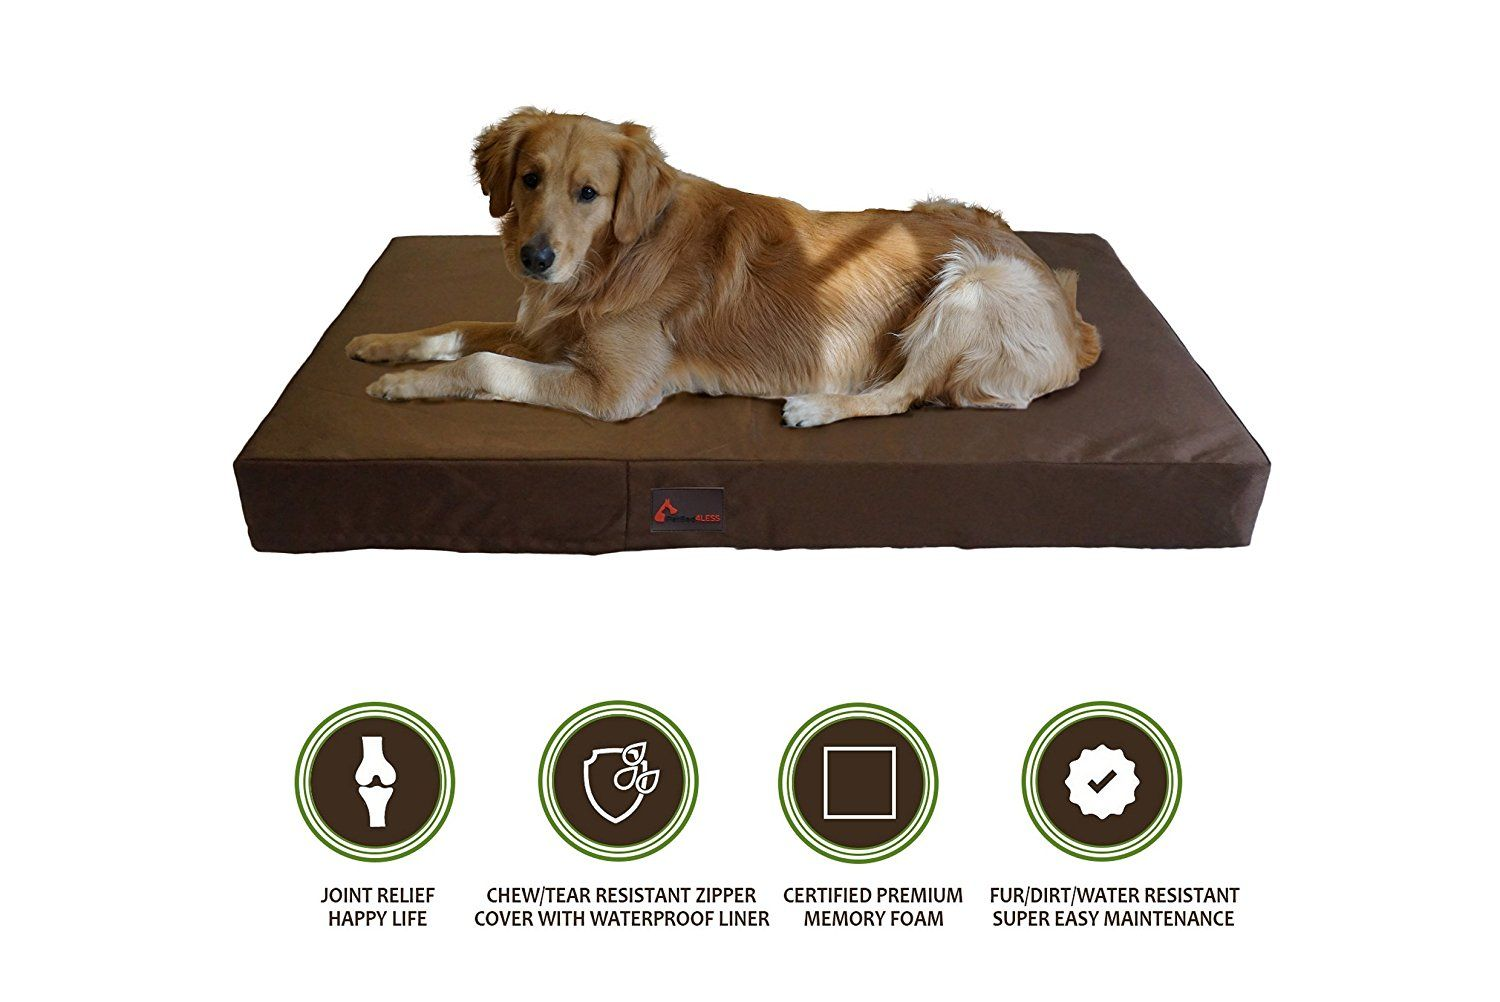 PetBed4Less Deluxe Orthopedic Memory Foam Dog Bed Pet Pad